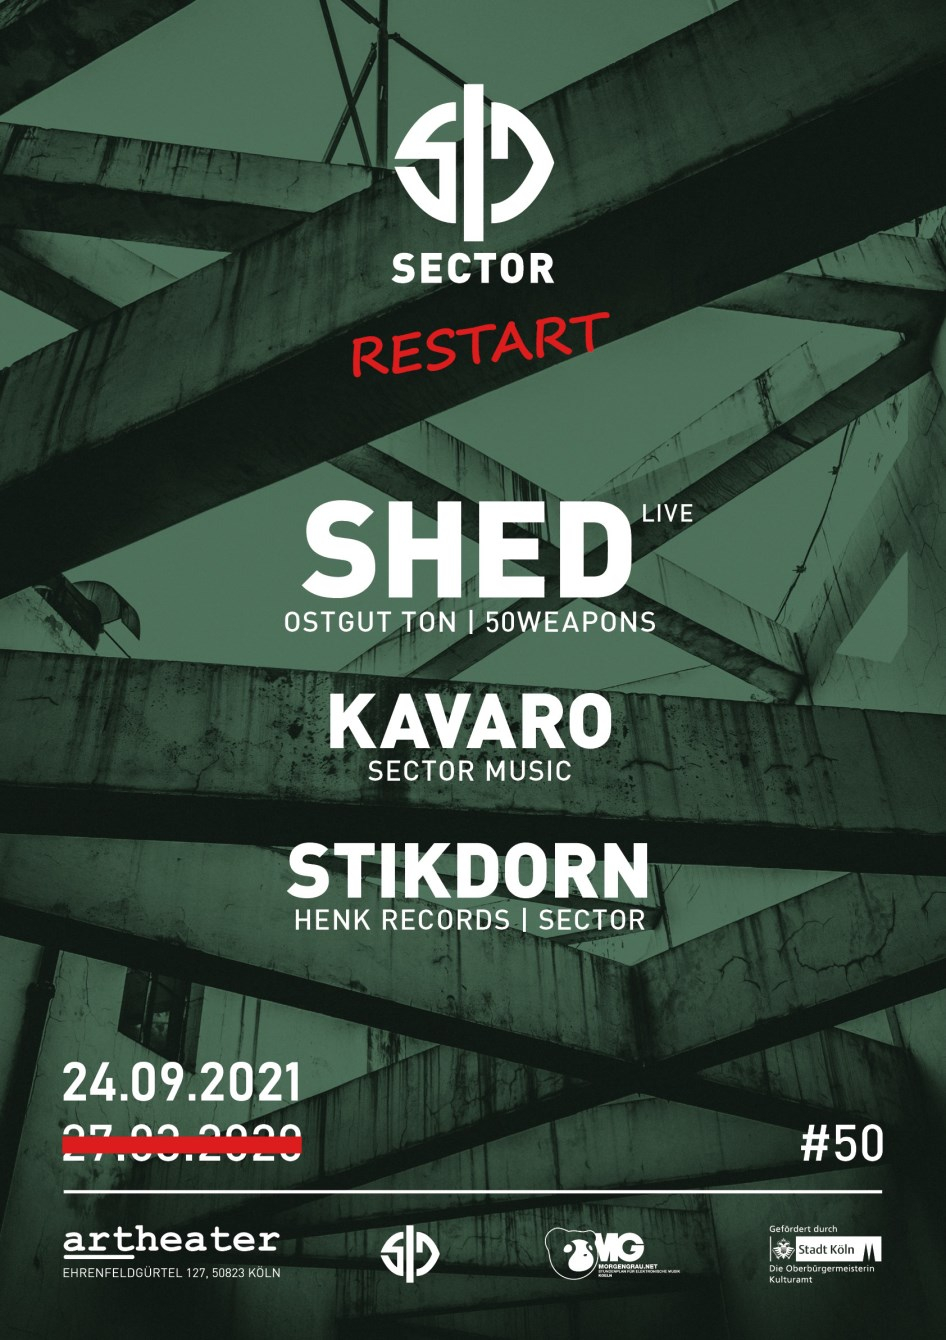 Sector with Shed - Live, Stikdorn & Kavaro - Flyer front